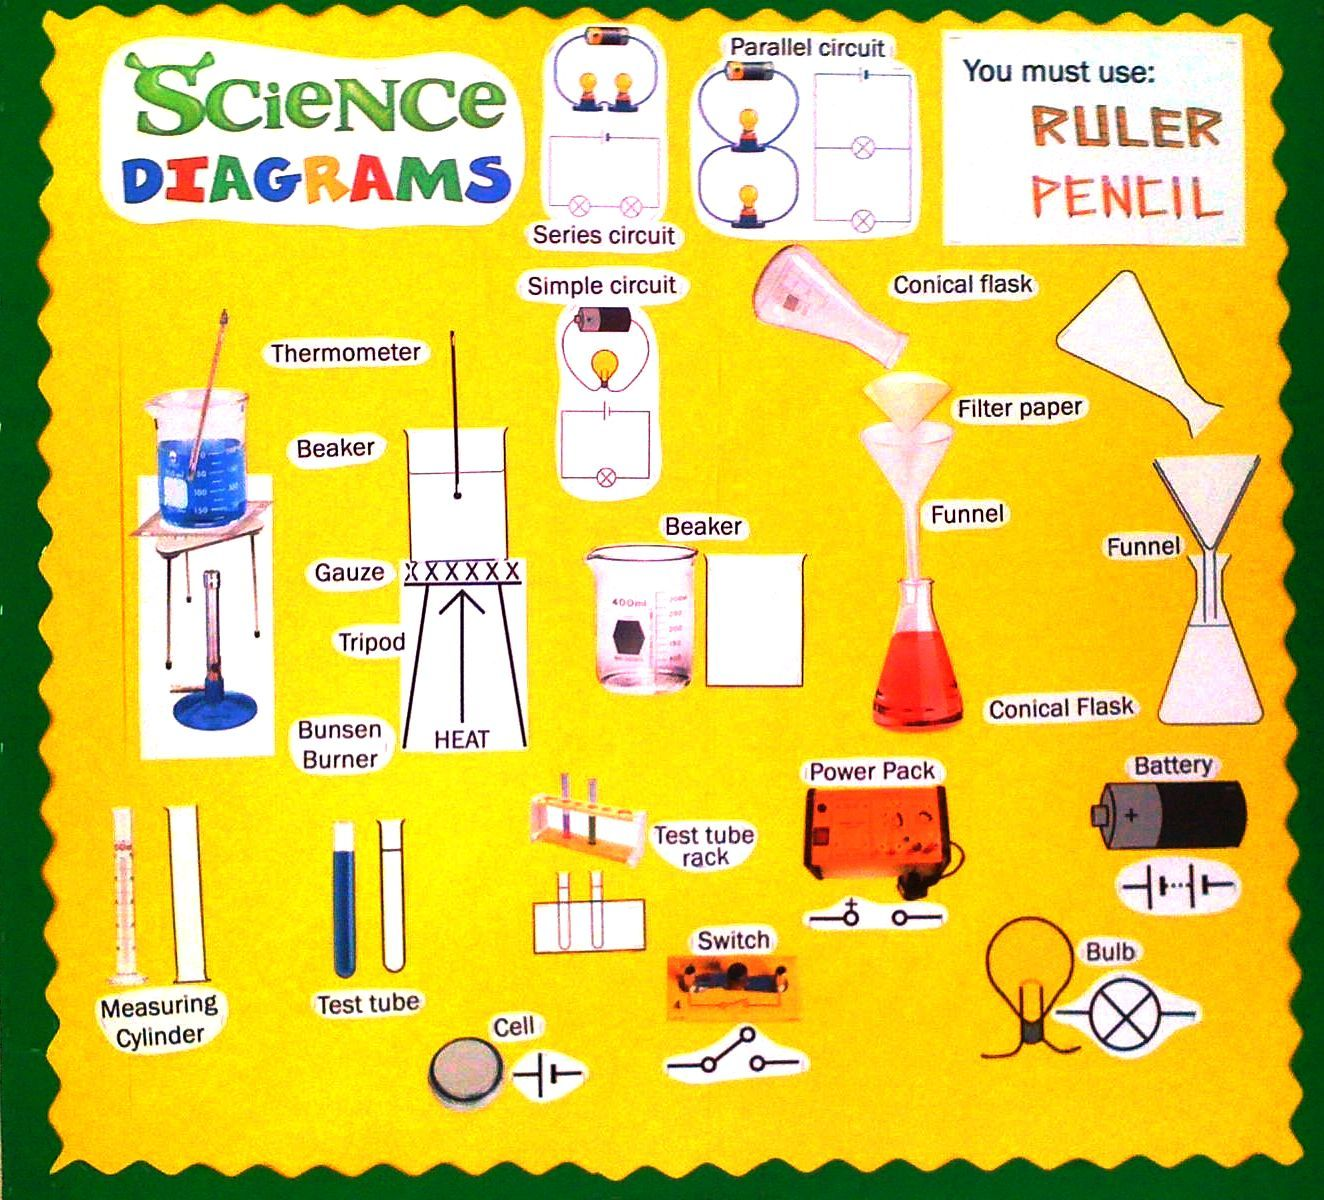 Science Diagrams Display High School